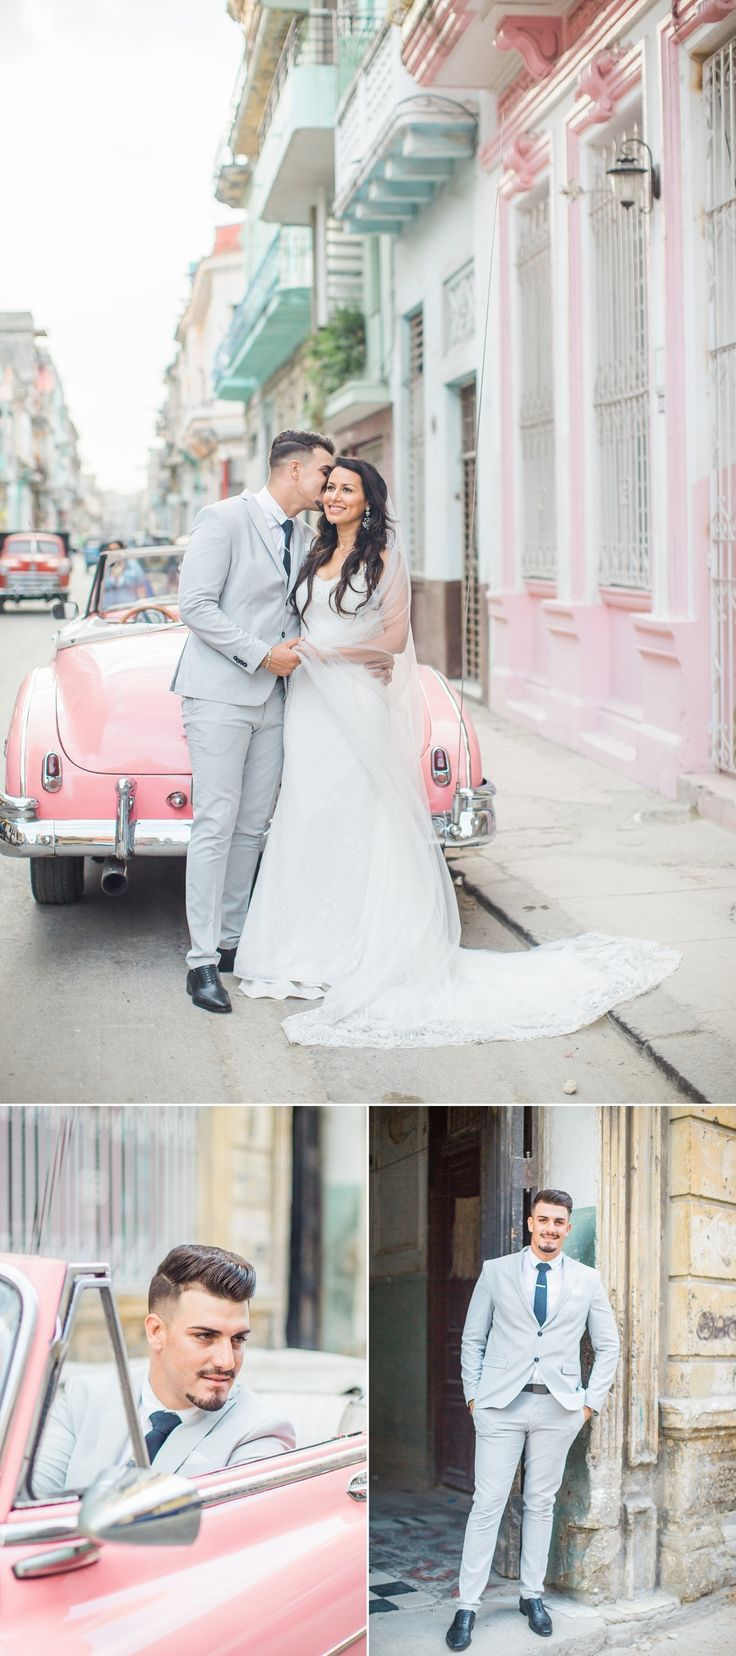 Cuba Real Wedding, Vintage old car Havana Wedding, Pastel Colors in Havana Cuba, Havana Wedding Photographer www.ayenianour.com